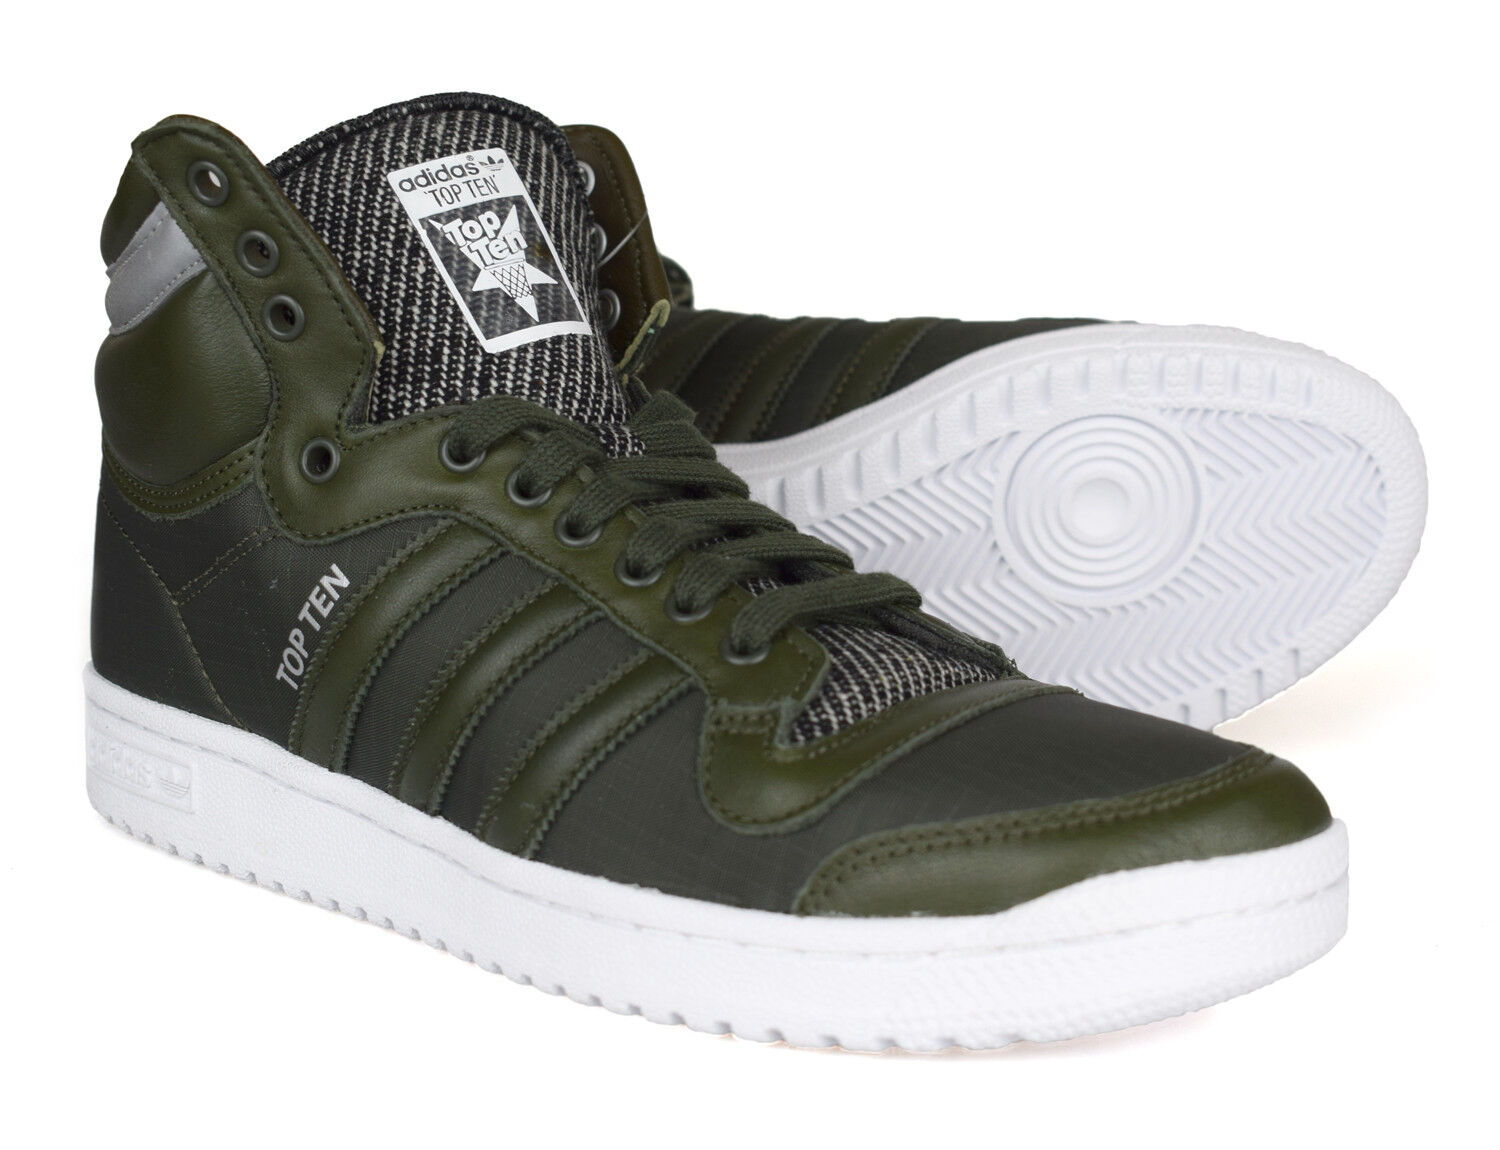 Adidas Originals Verde Oscuro Top Top Top Ten Hi Winterized Cuero Tenis B35374 0650b2